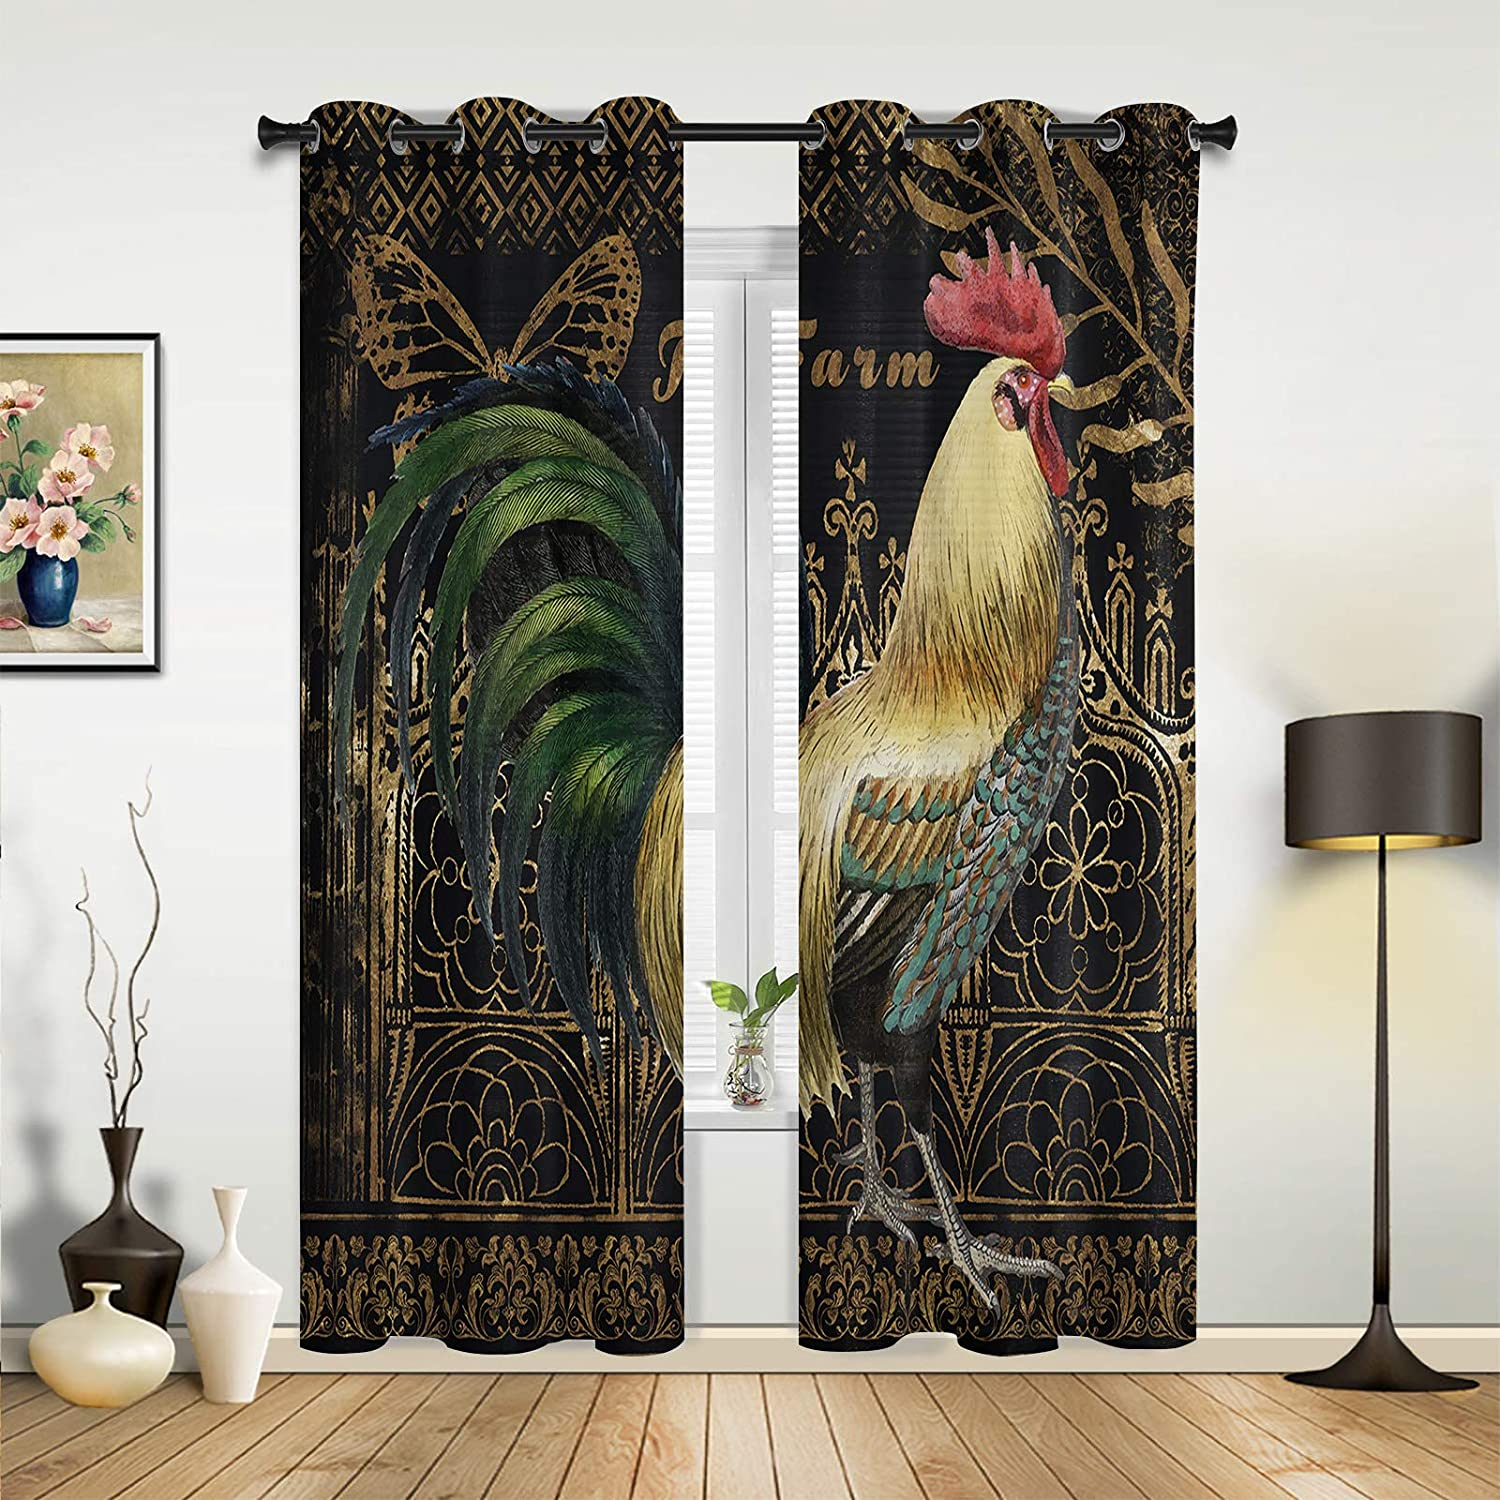 Beauty Decor Free Shipping New Window Sheer Curtains Farm for sold out Bedroom Room Living